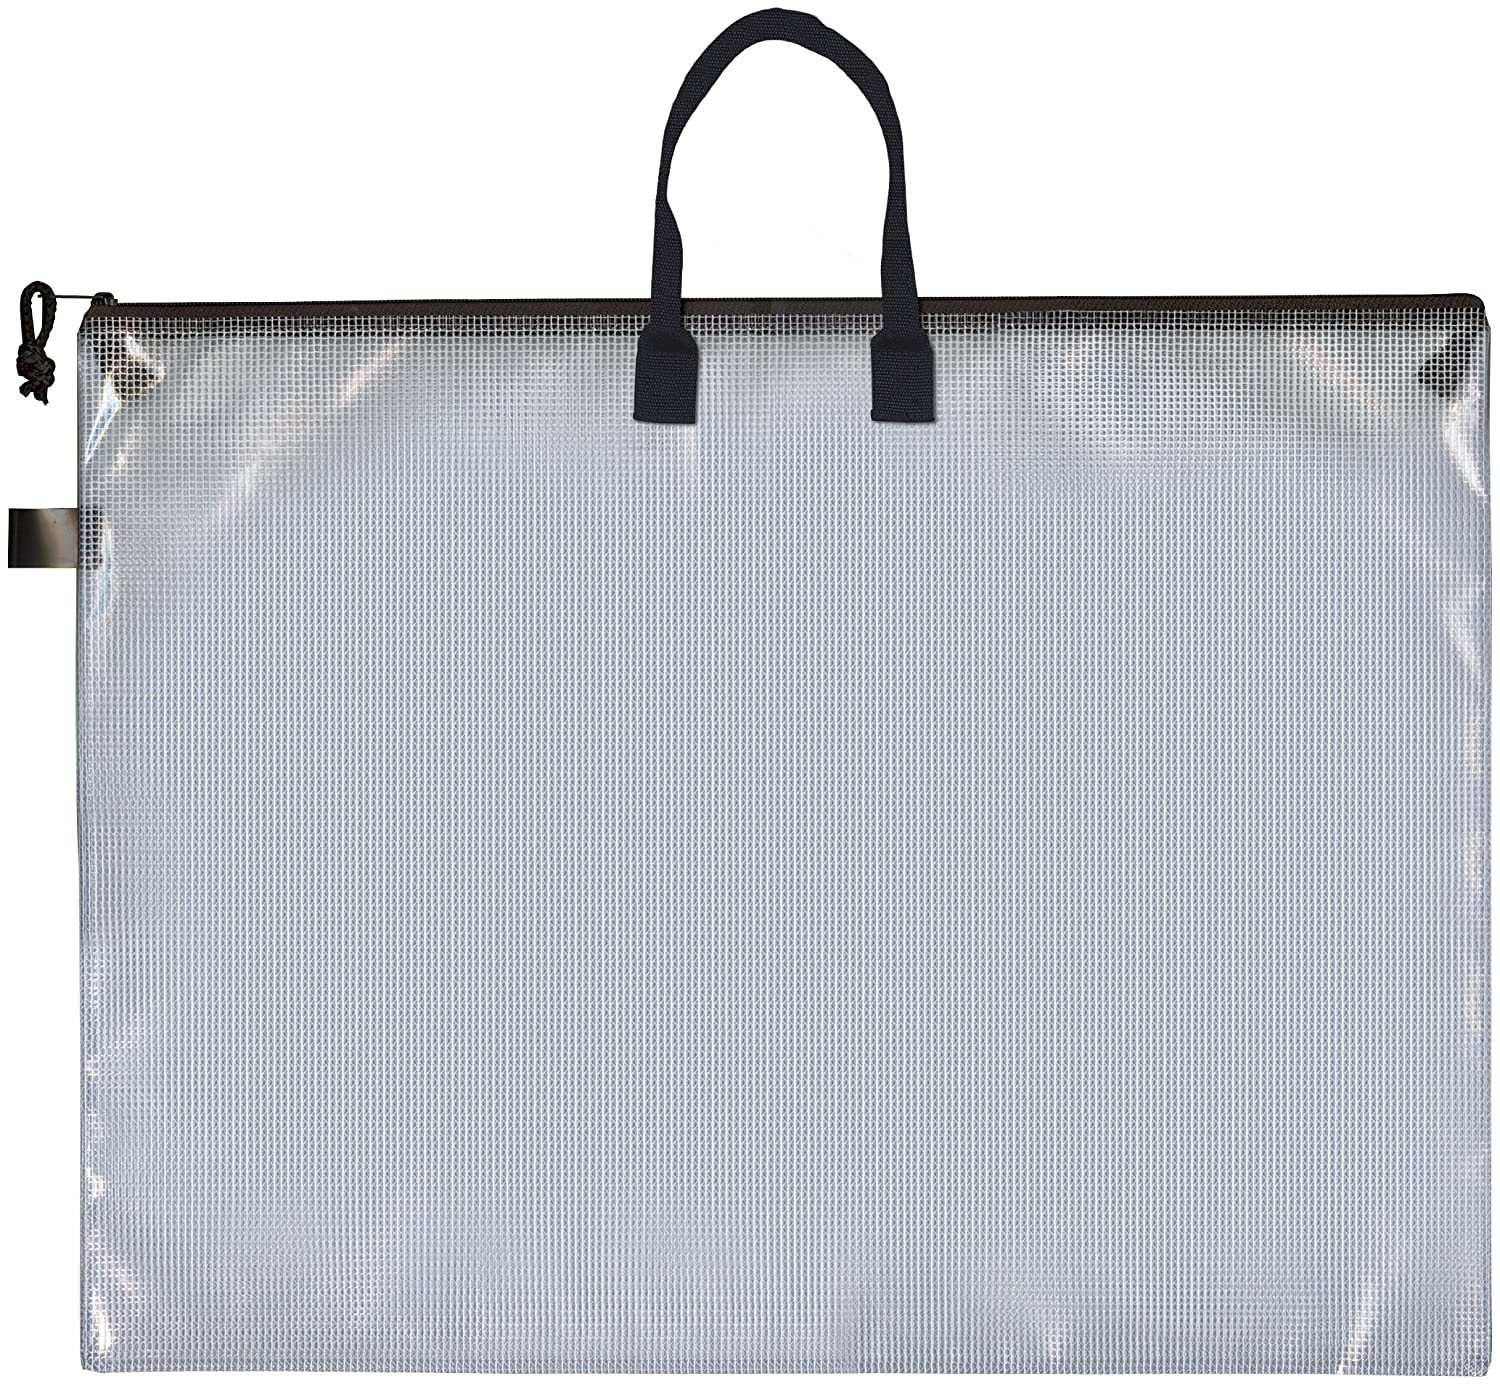 19-inch x 25-inch Mesh Bag with Zipper and Handle